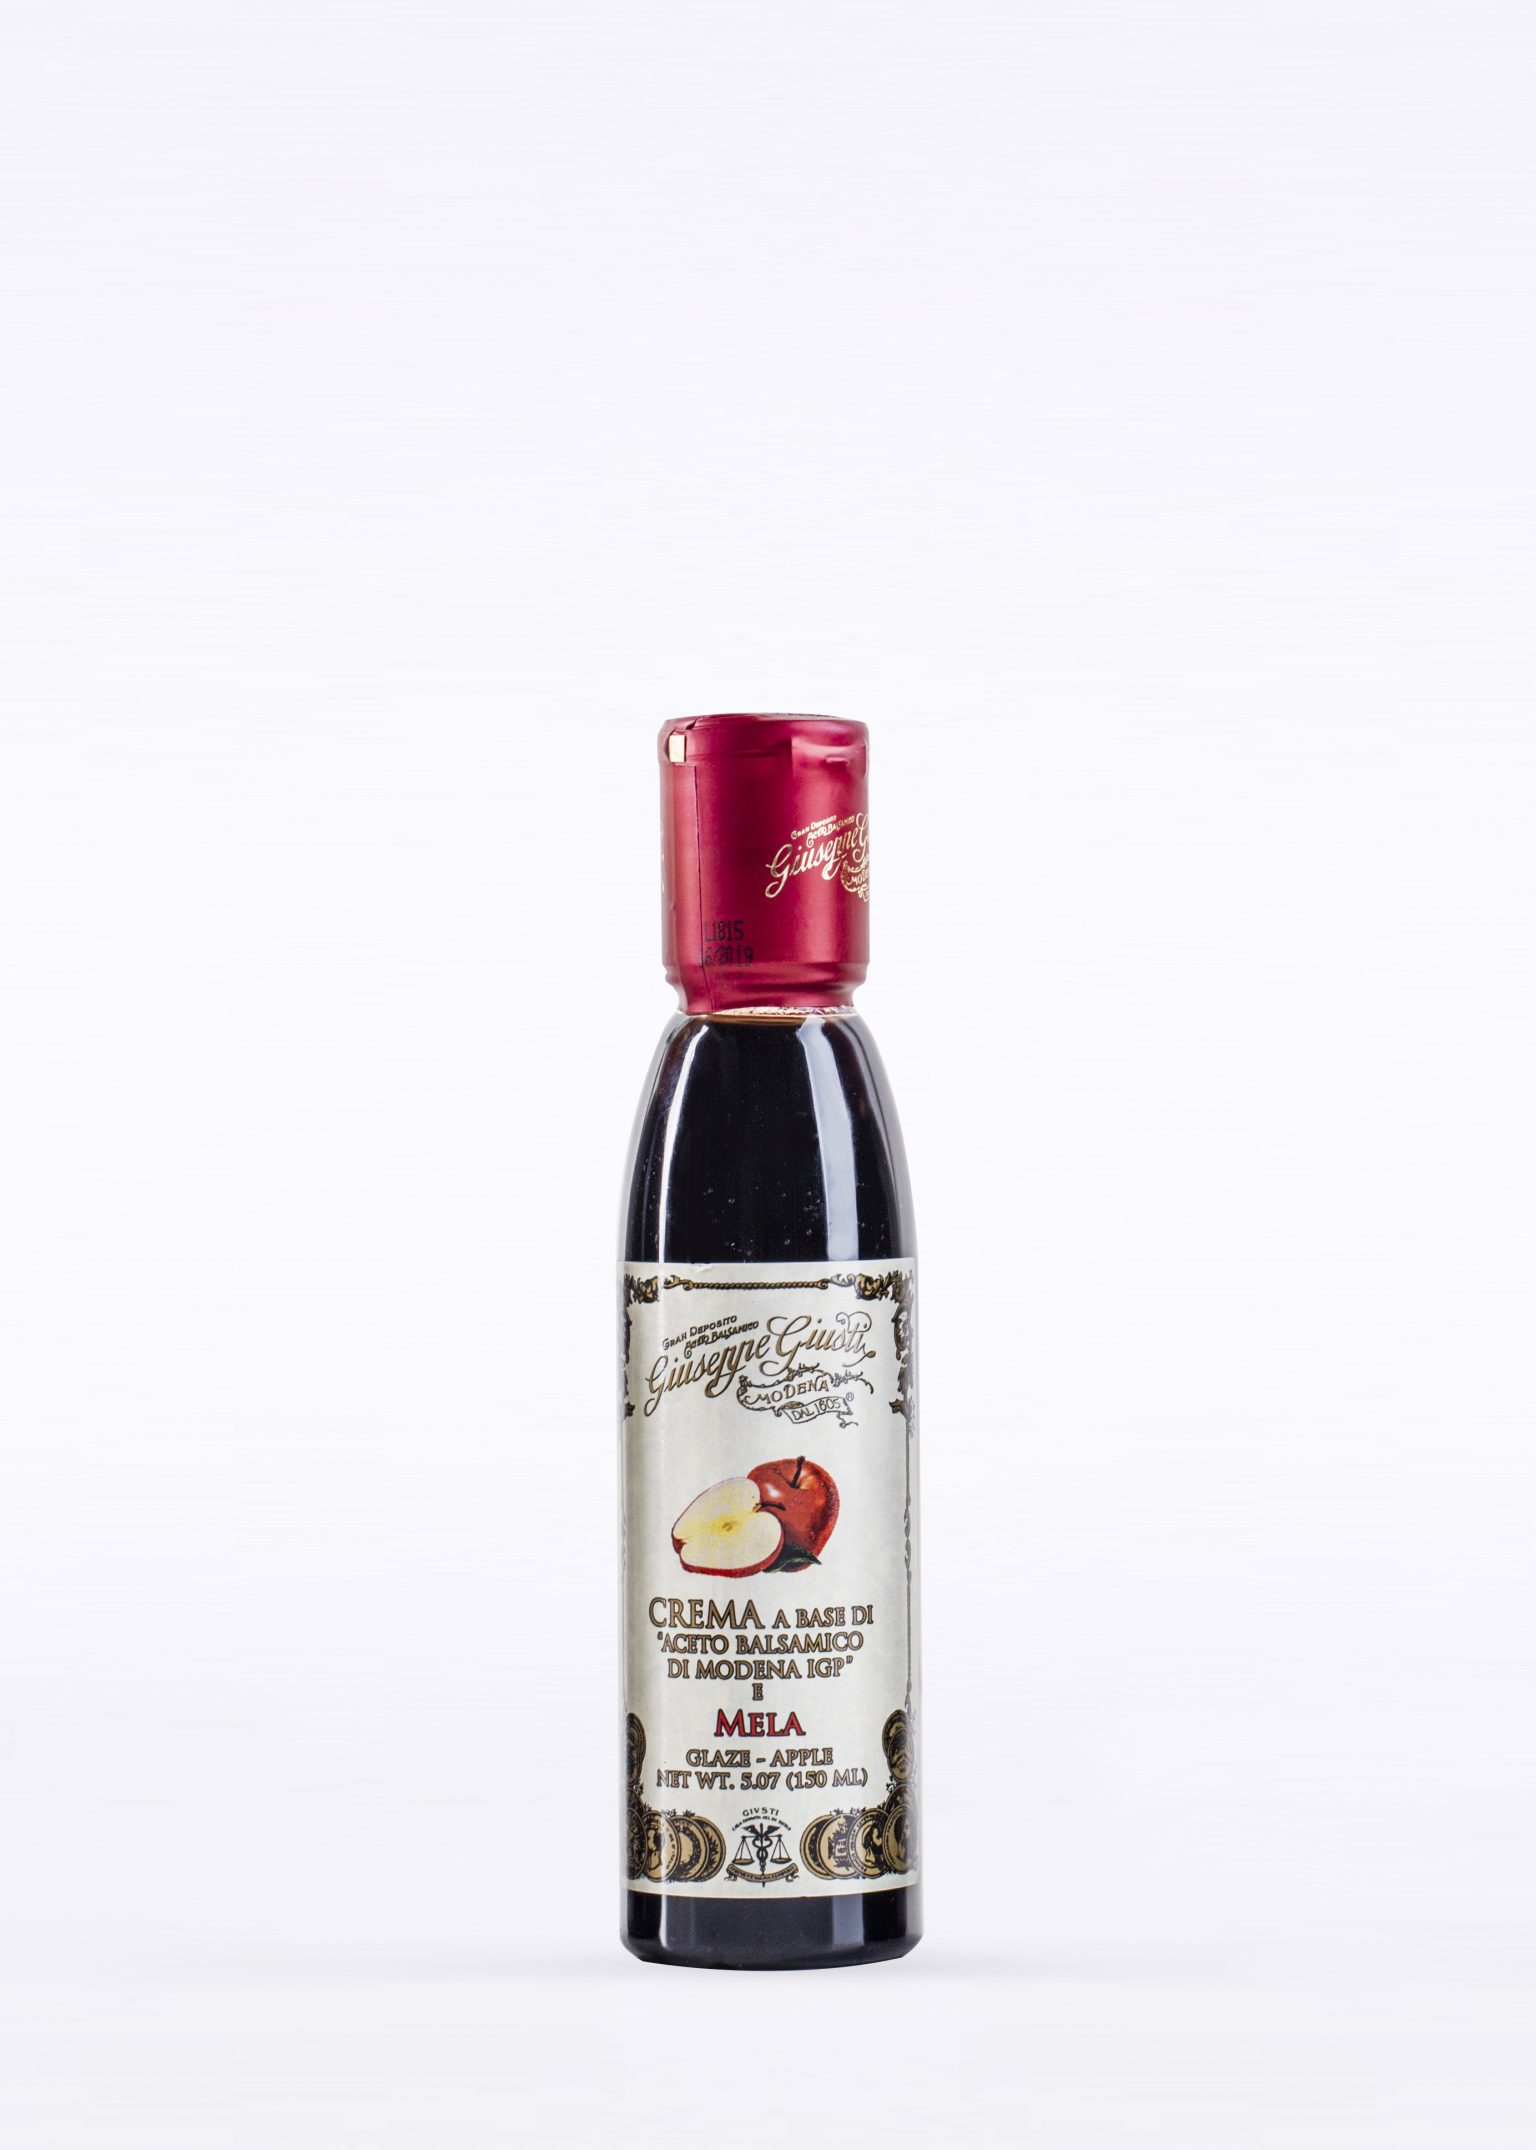 Glaze with Balsamic Vinegar of Modena and Apple 150ml